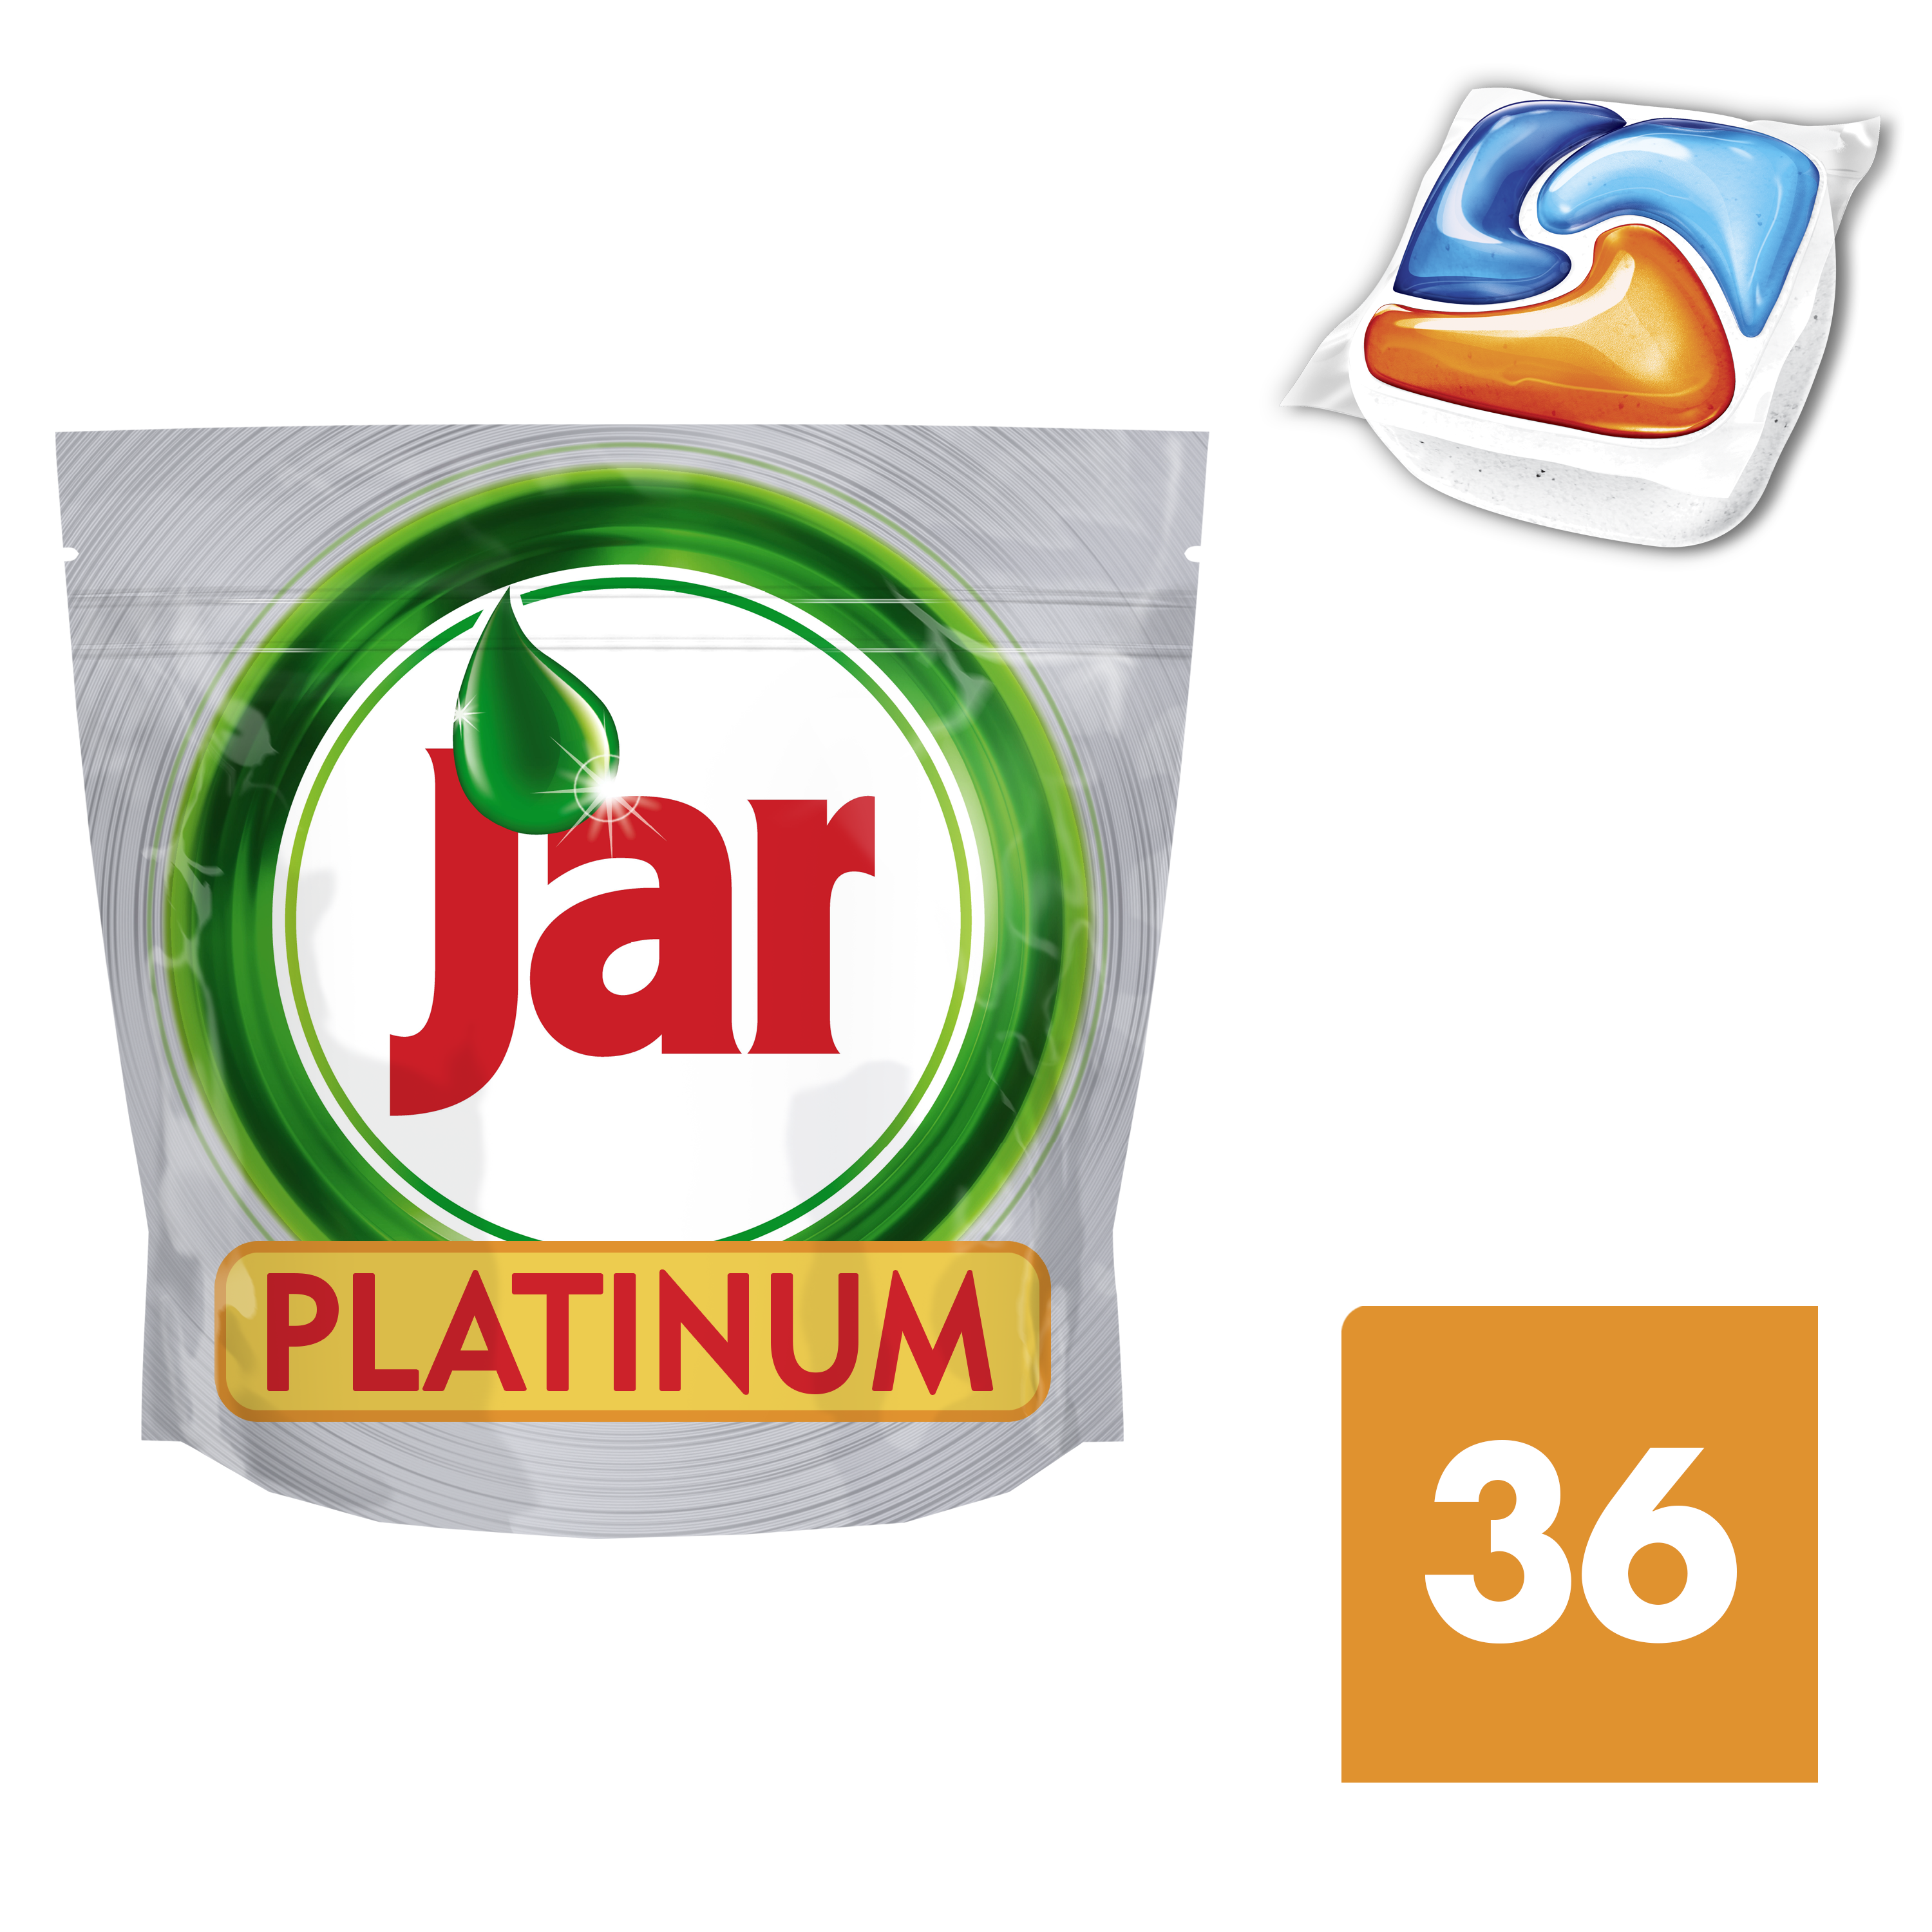 JAR Platinum Orange 36 ks - kapsle do myčky